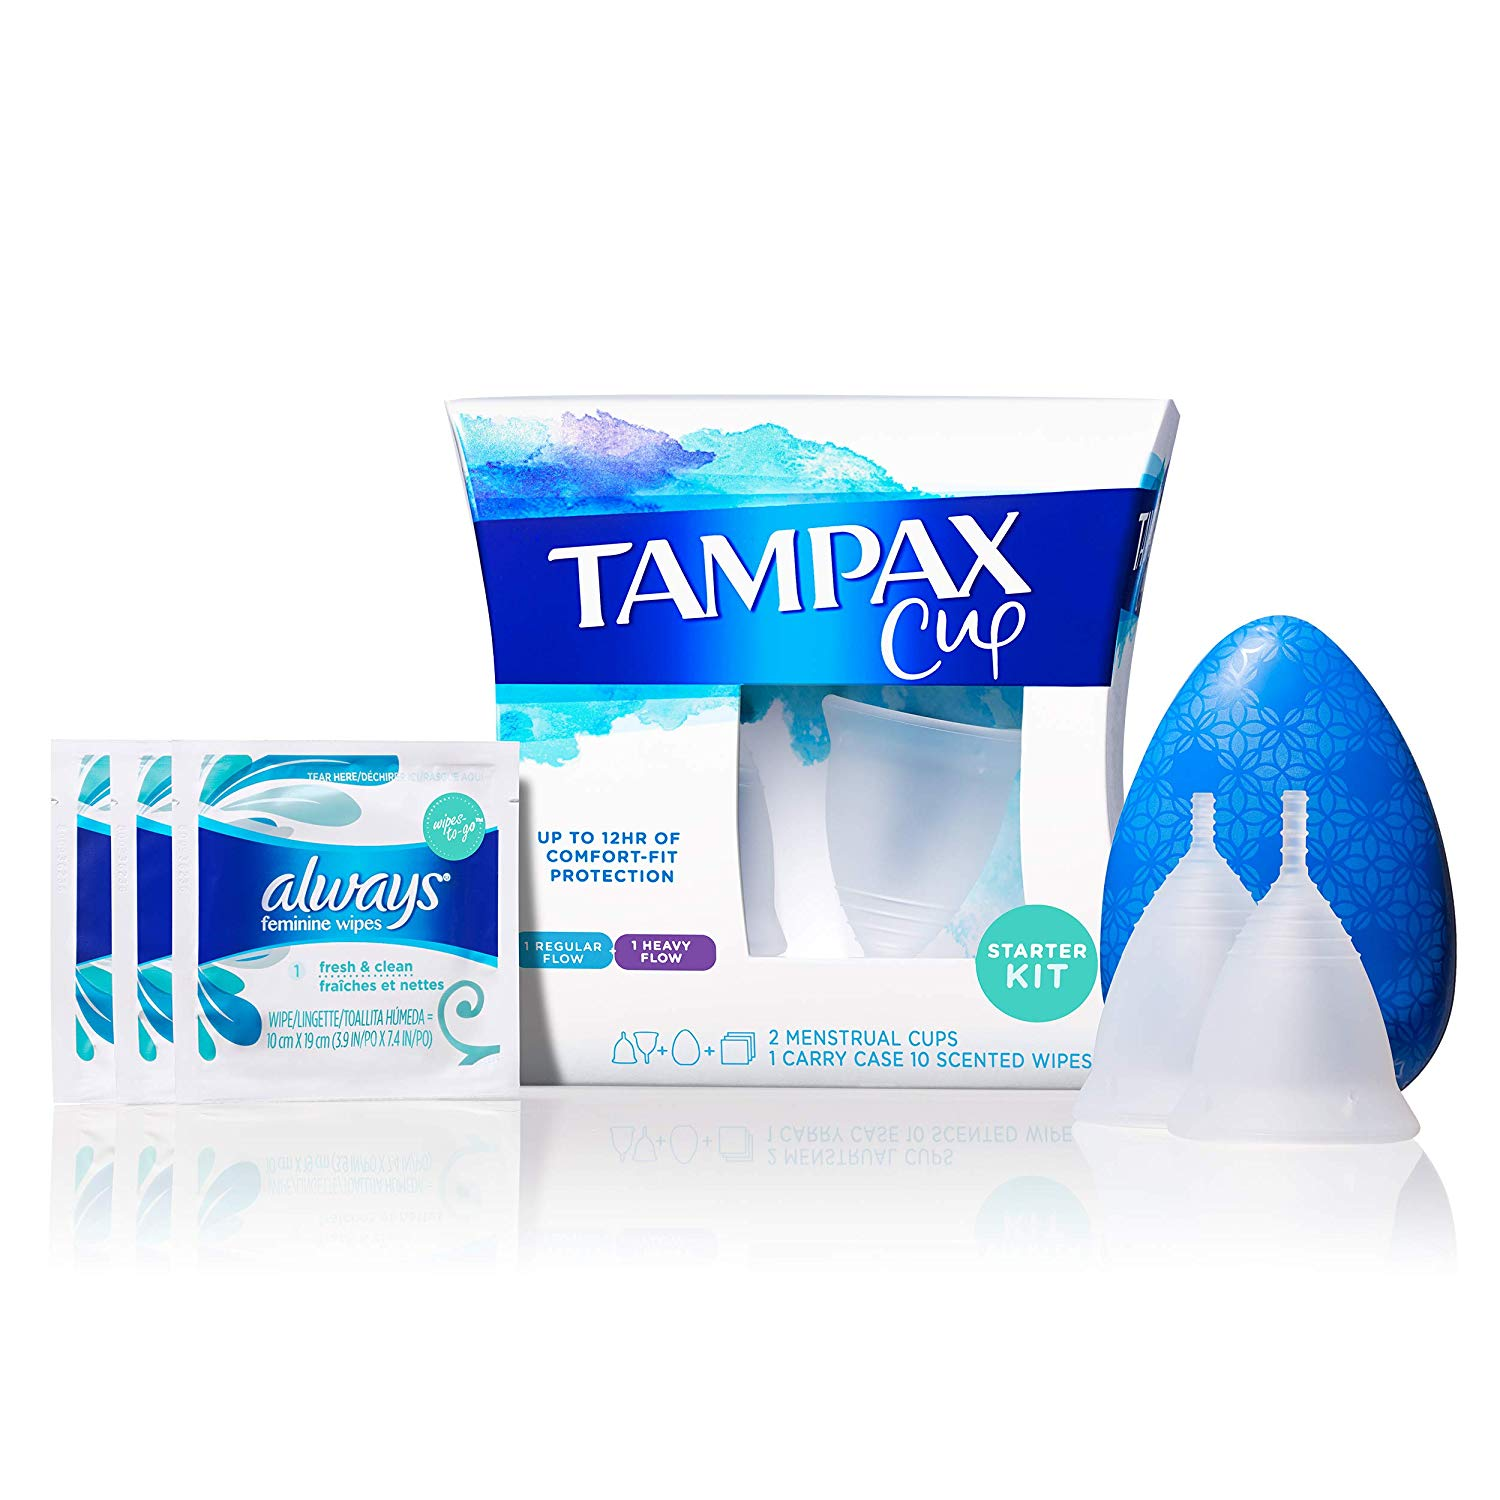 Tampax Menstrual Cup Starter Kit from Amazon